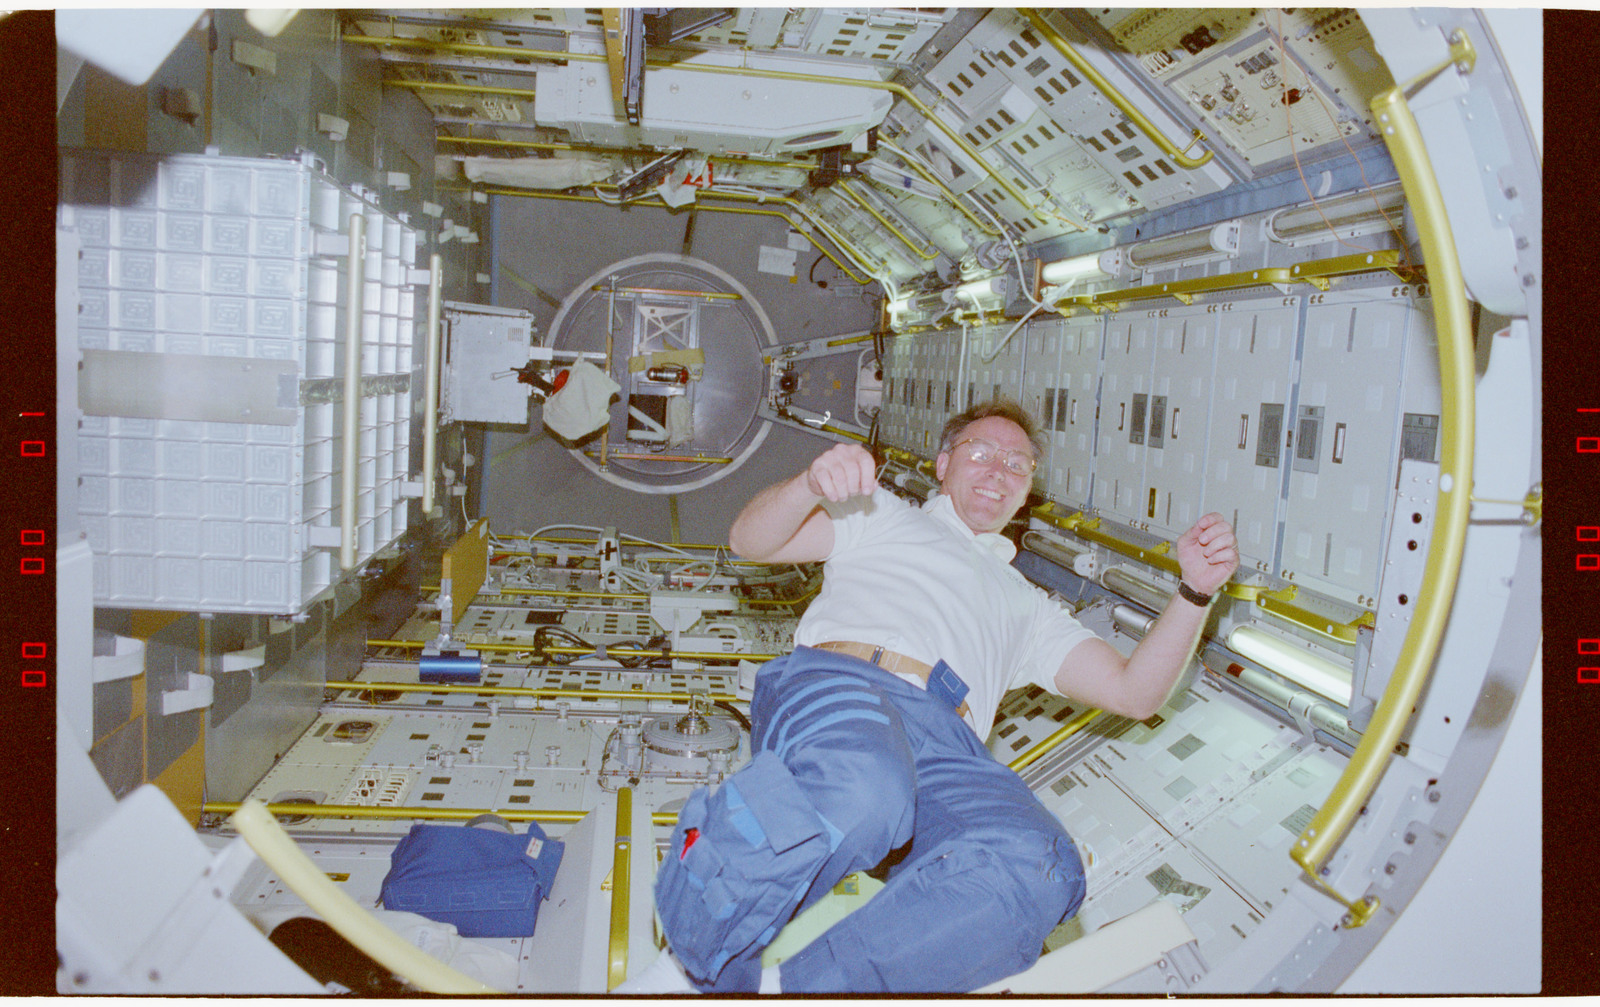 STS055-214-030 - STS-055 - Crewmember in the D-2 Spacelab.